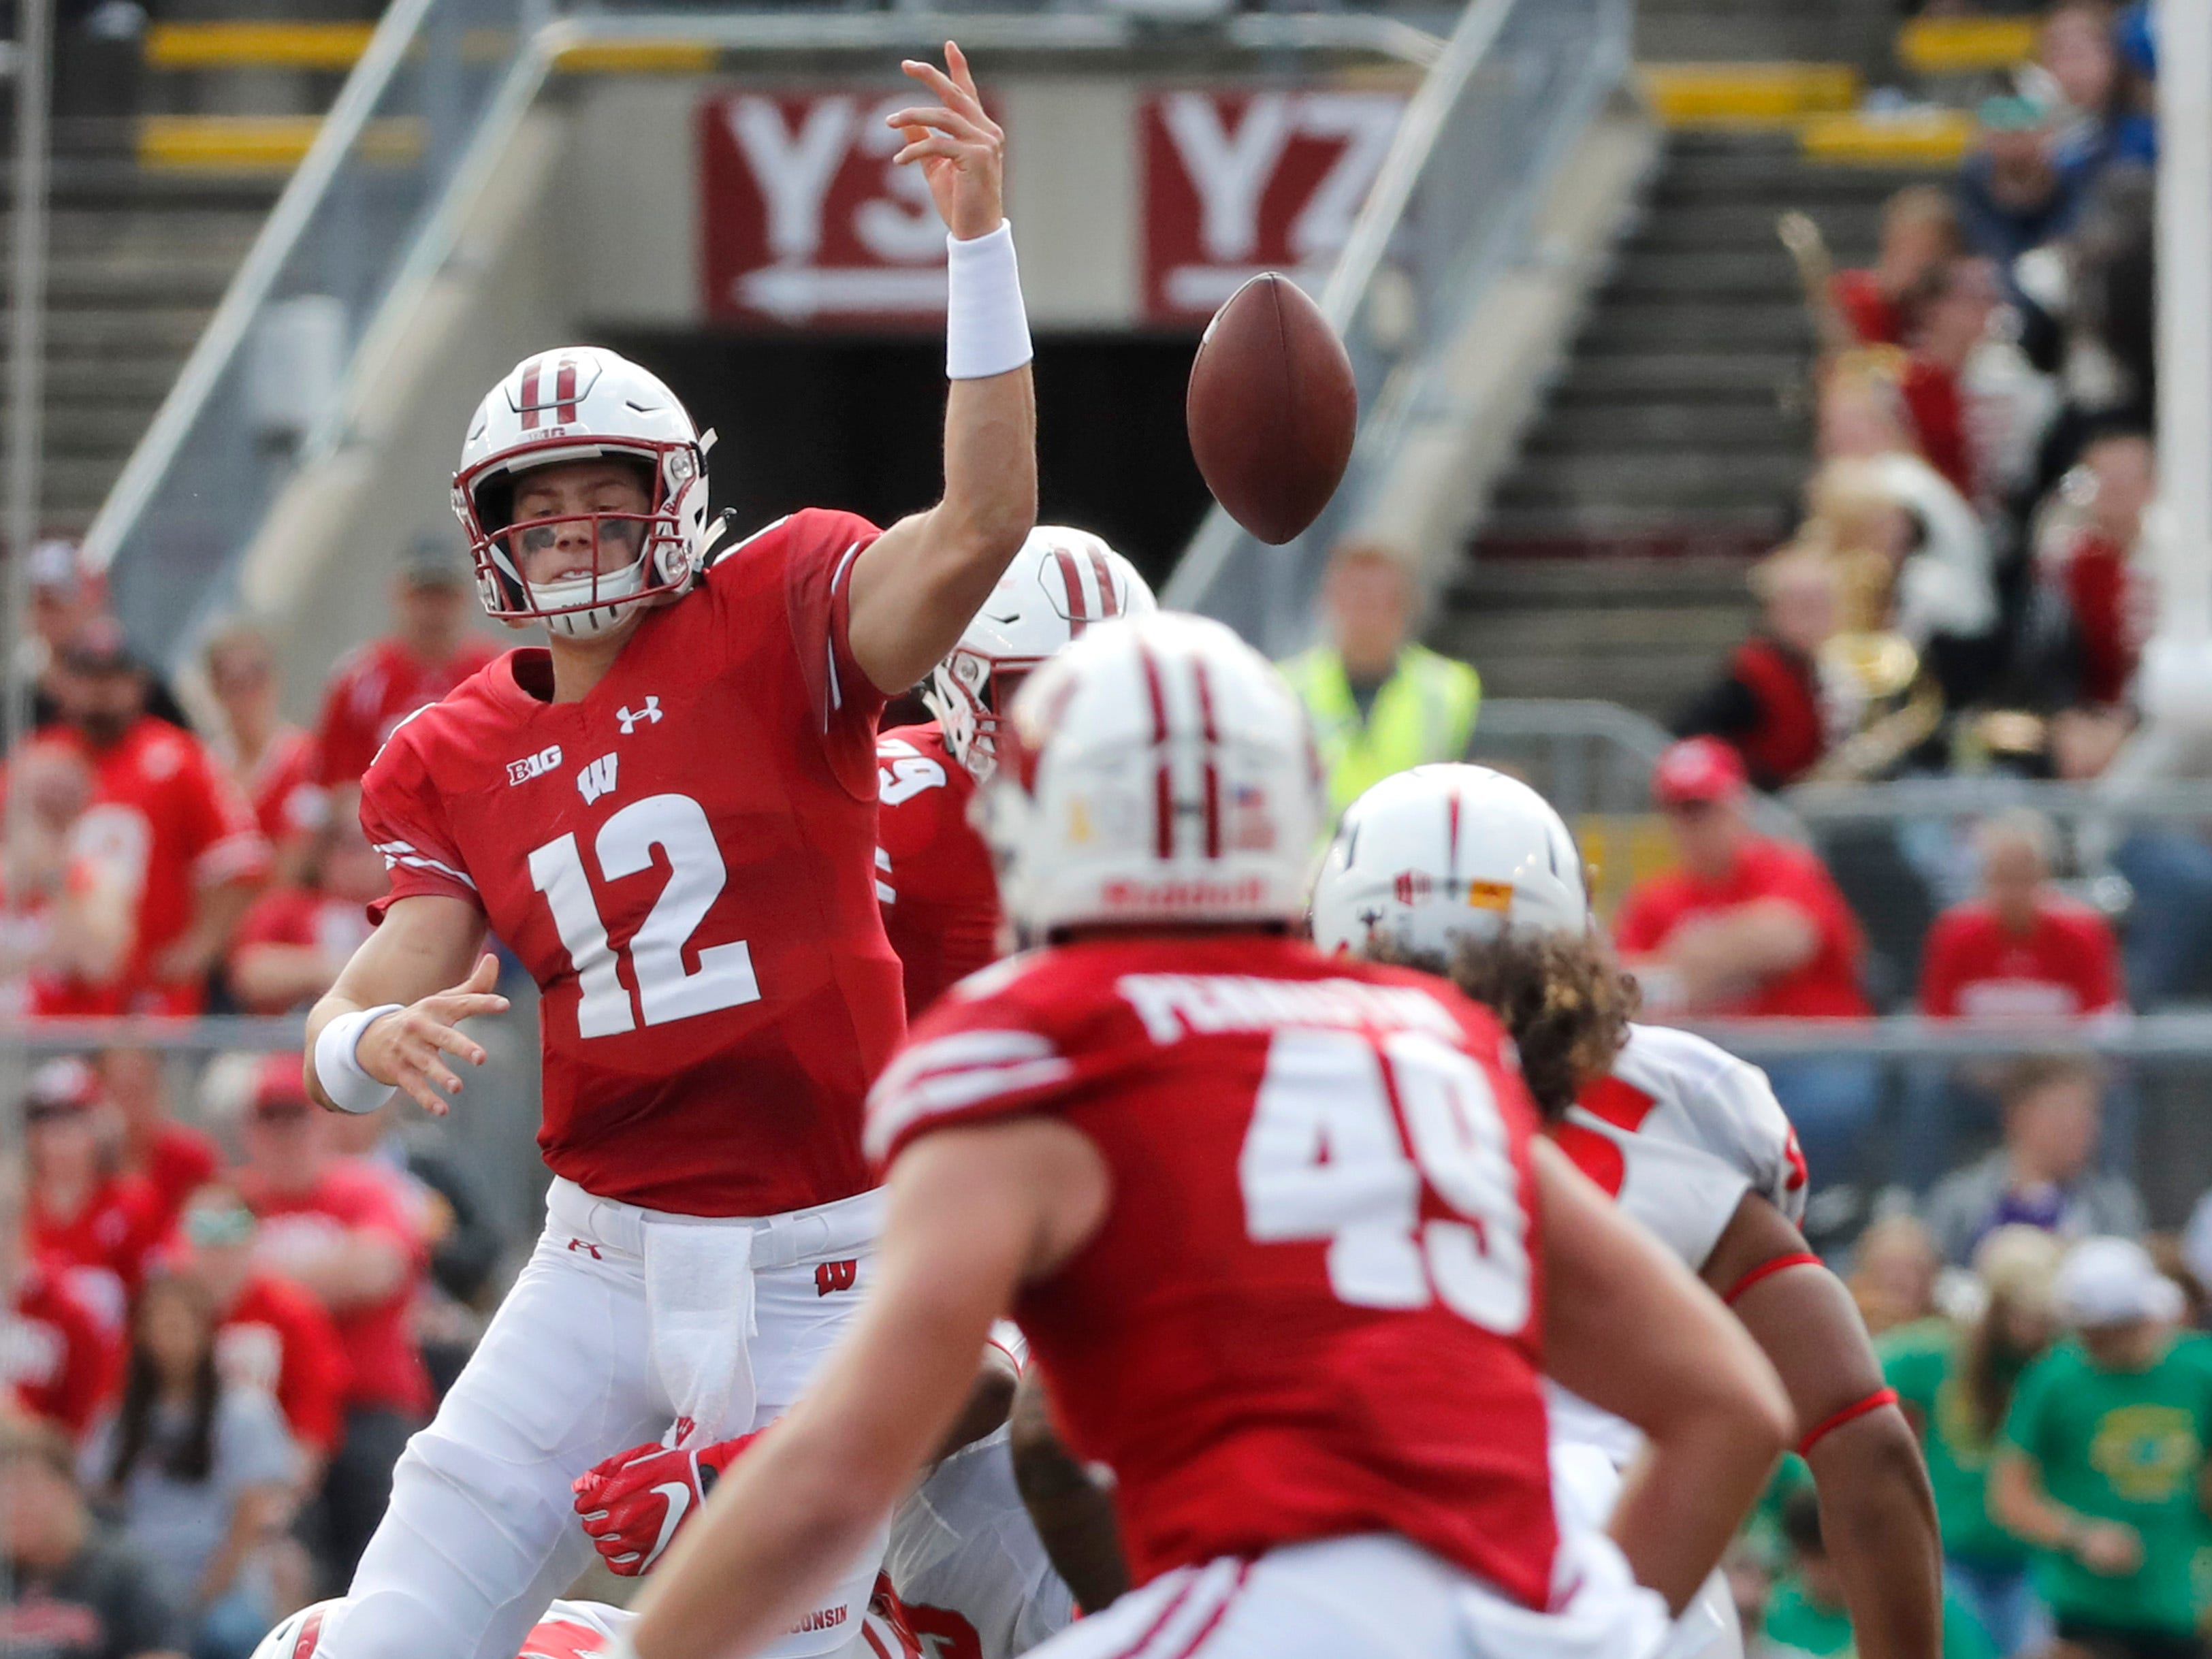 Wisconsin quarterback Alex Hornibrook  is tackled while throwing a pass that was intercepted by New Mexico linebacker Evahelotu Tohi.